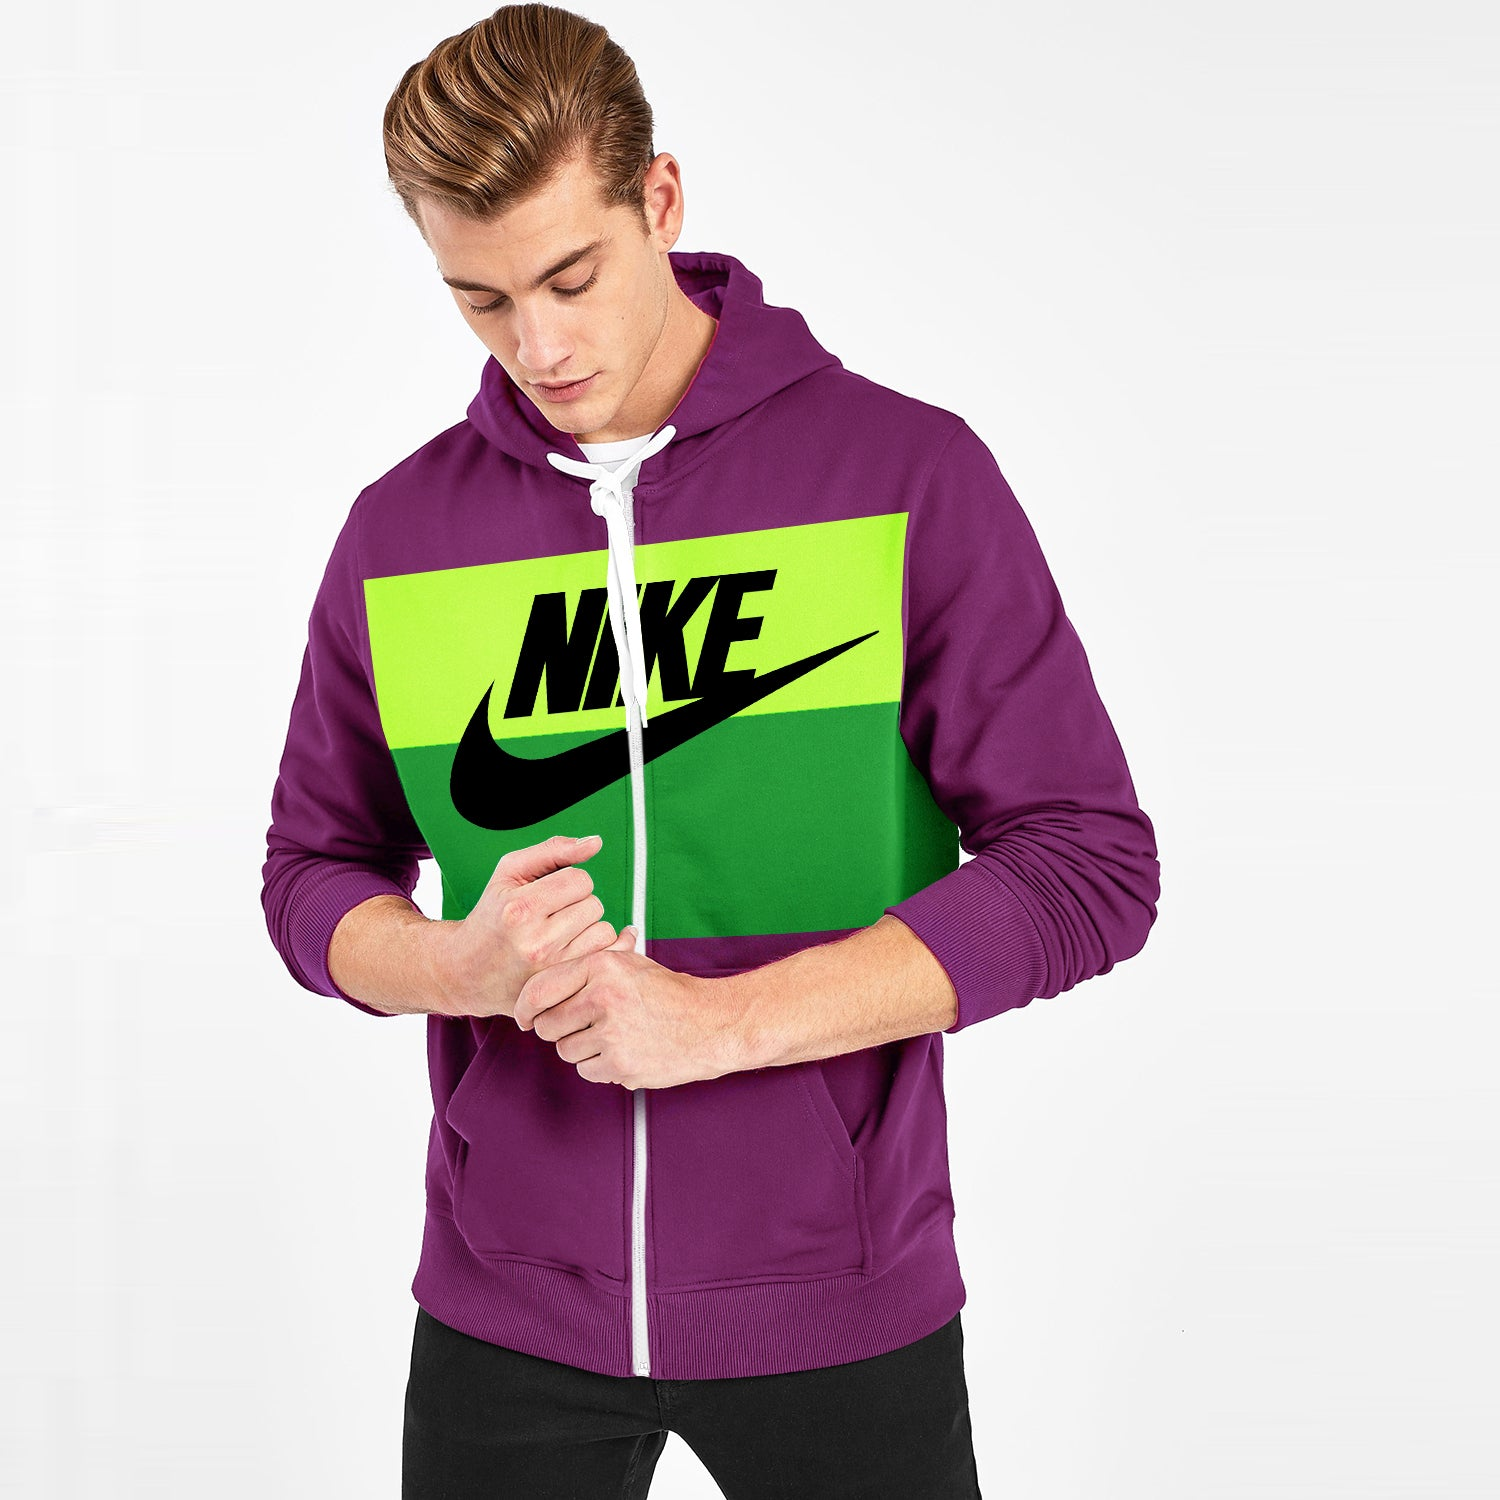 NK Slim Fit Stretchable Zipper Hoodie For Men-Scarlet with Lime Green & Green Panel-BE11125